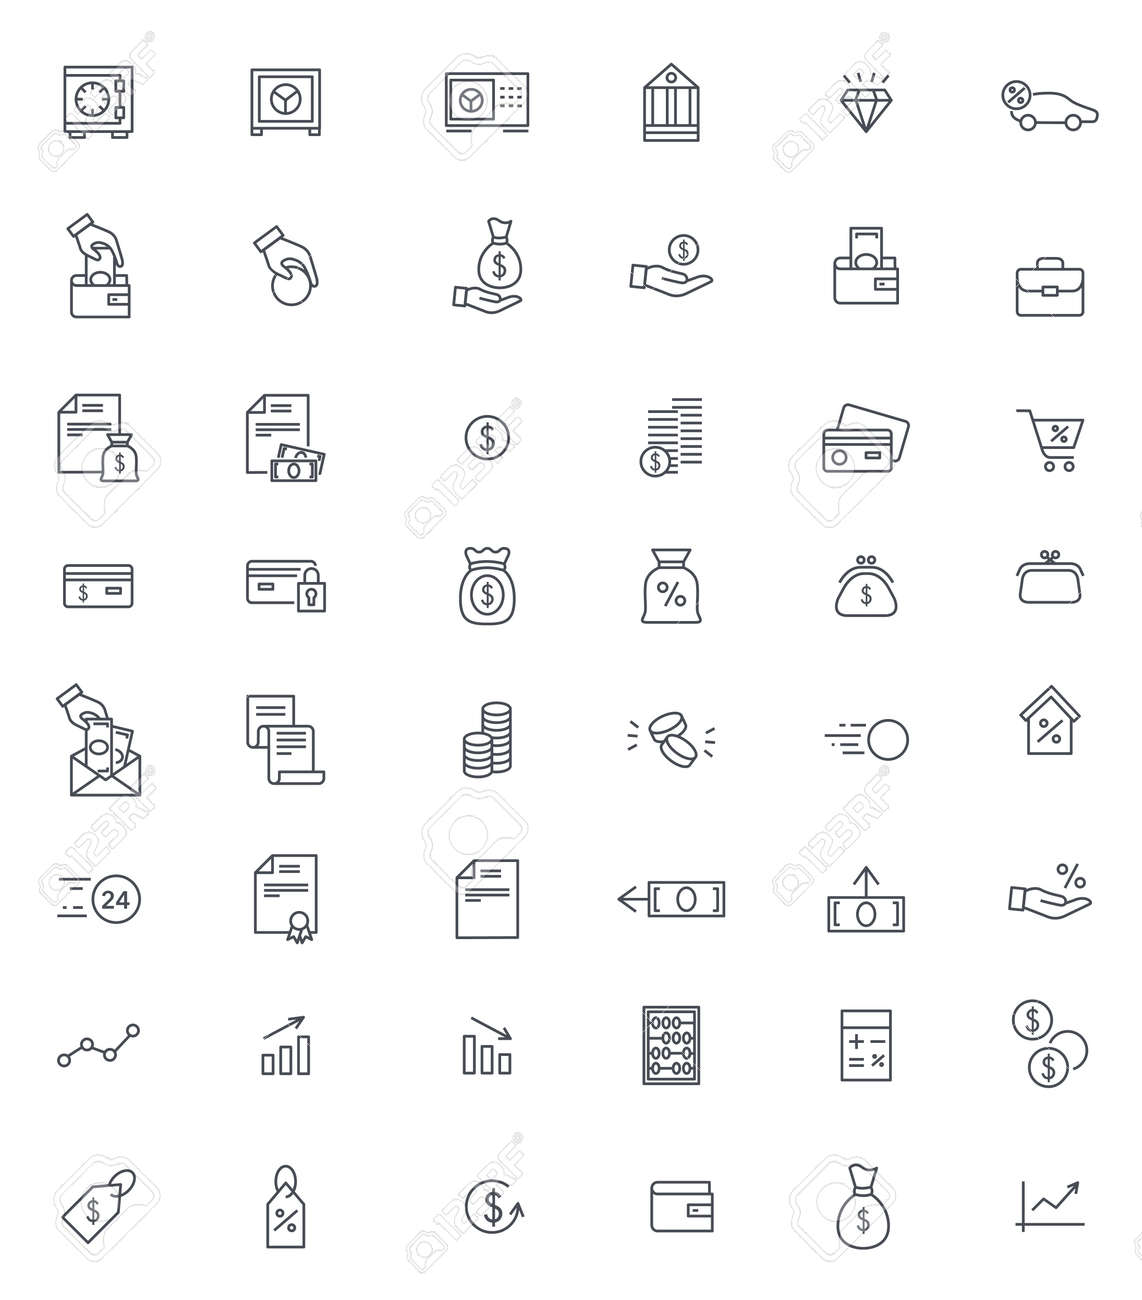 Finance and banking thin icons vector set - 167554924